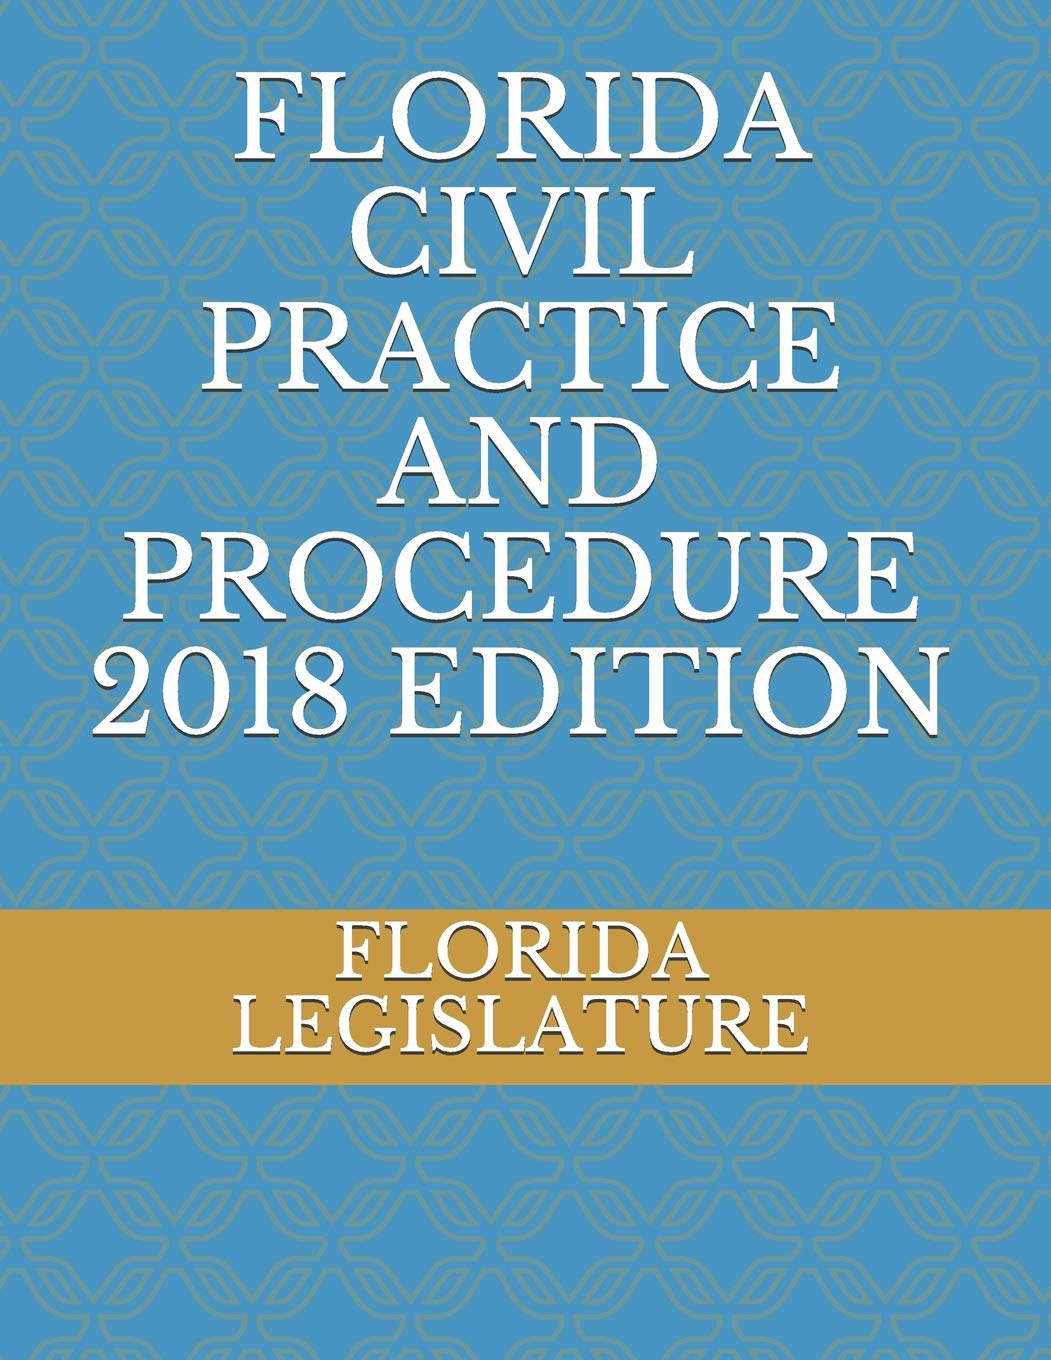 FLORIDA CIVIL PRACTICE AND PROCEDURE 2018 EDITION Paperback – August 8, 2018 FLORIDA LEGISLATURE Independently published 1718079966 LAW / Civil Procedure